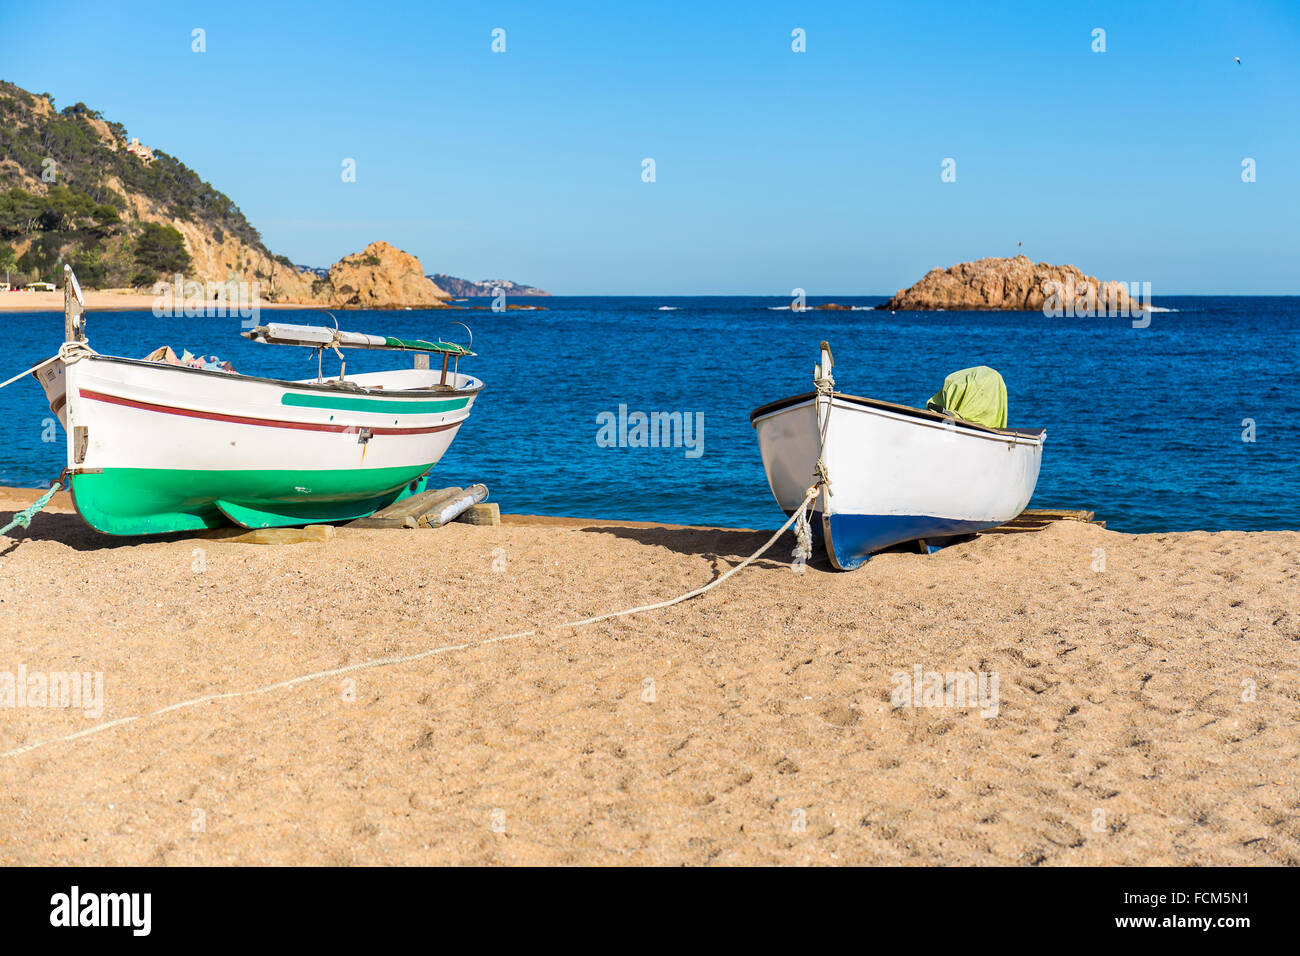 Fishermen's boat on a beach, Tossa de Mar, Costa Brava, Catalonia - Stock Image